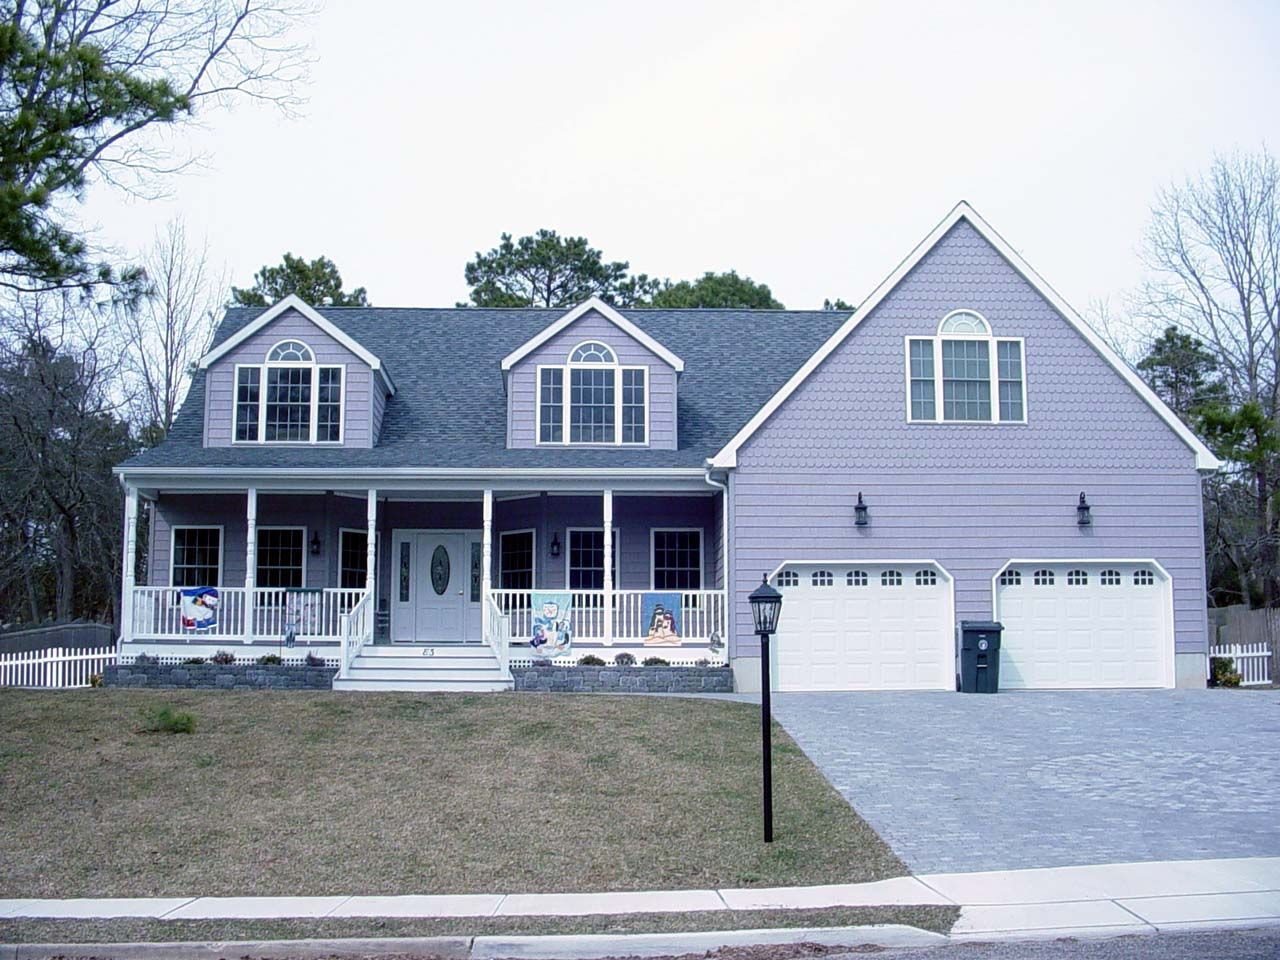 Cape cod front porch ideas - Cape Cod Style Home With Farmers Porch Two Car Garage And Large Dormers